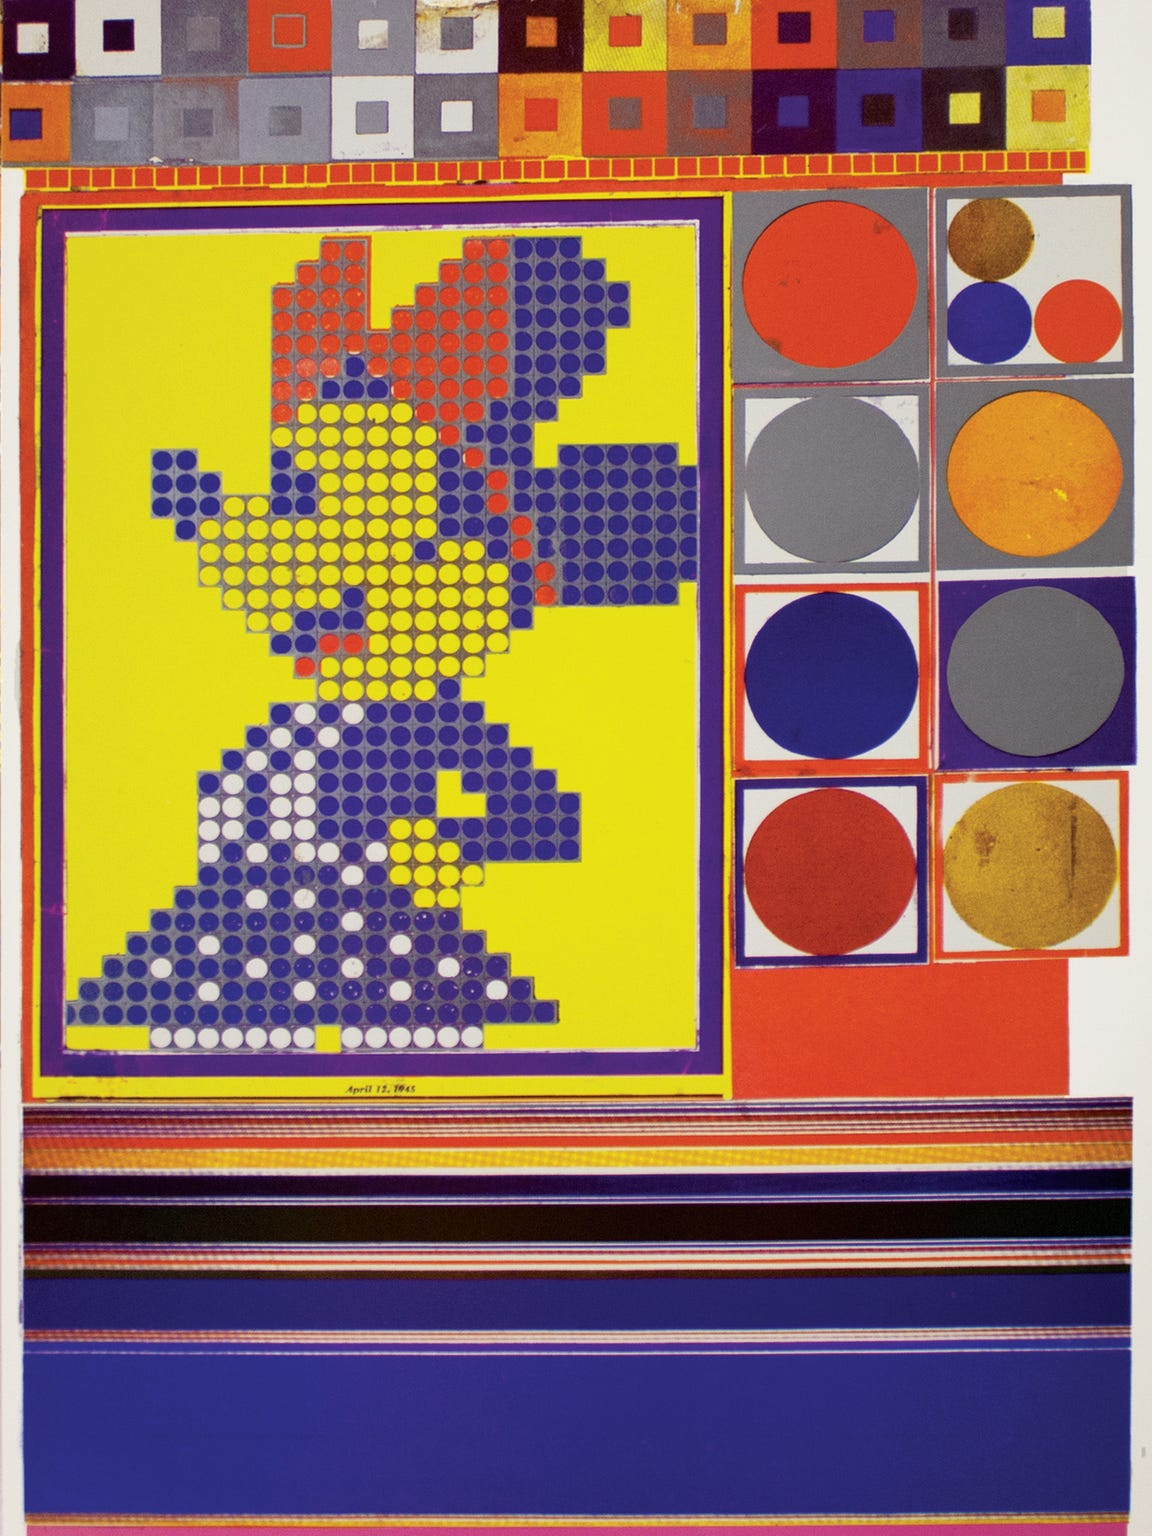 Eduardo Paolozzi is considered one of the founders